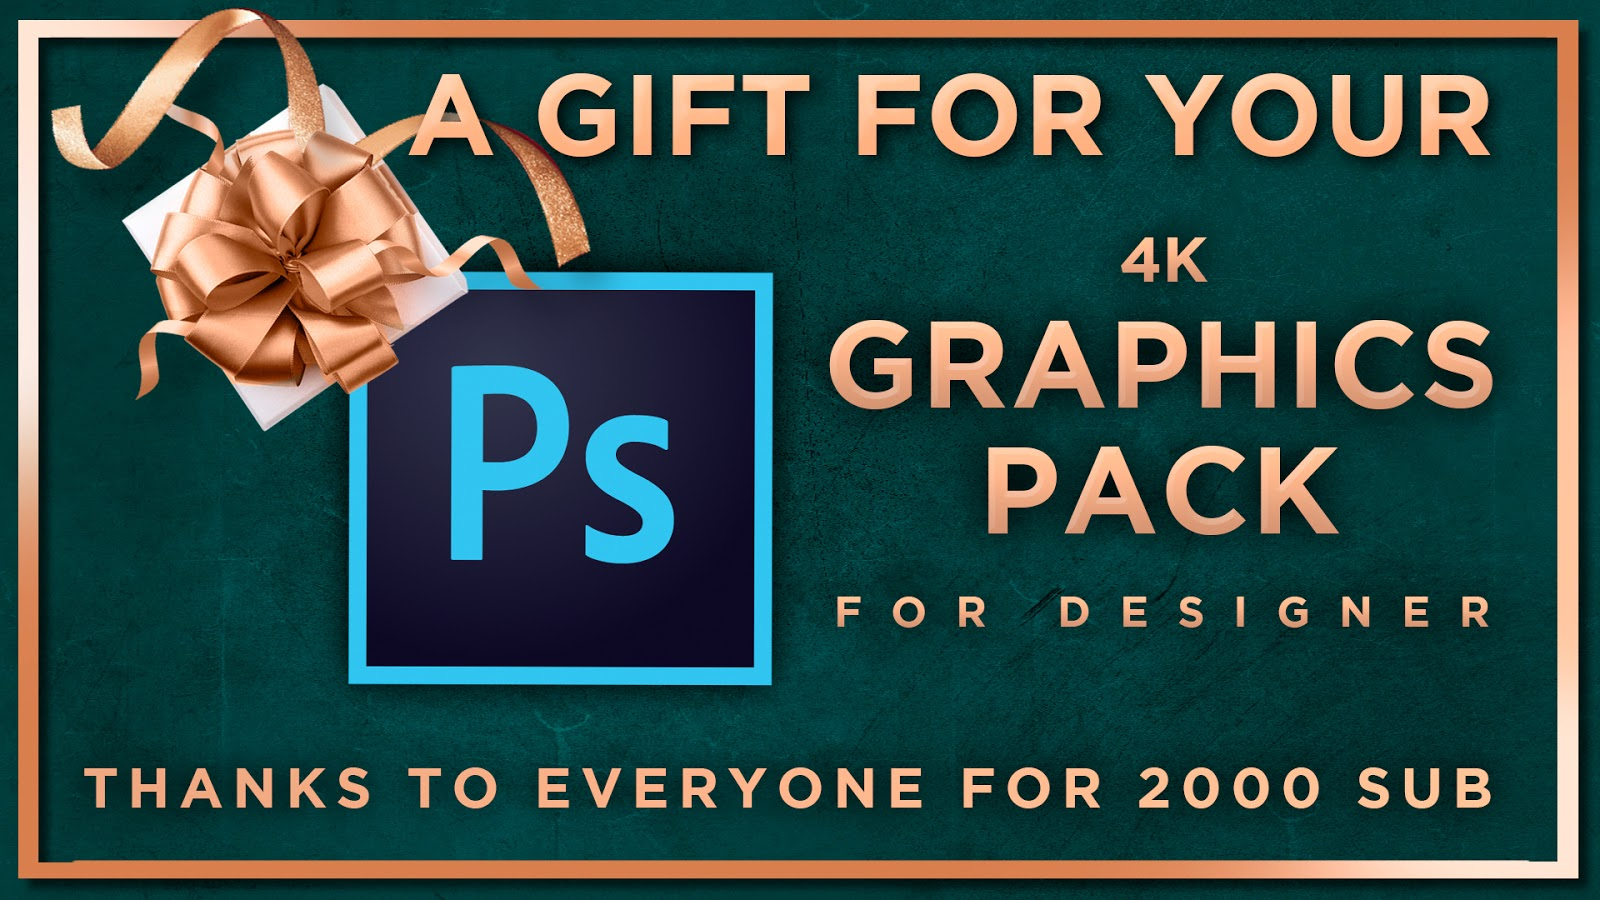 photoshop, top 5 best gfx pack, graphics pack, designers, layer style pack, effects pack, stock pack, font pack, sanczodesign, free photoshop